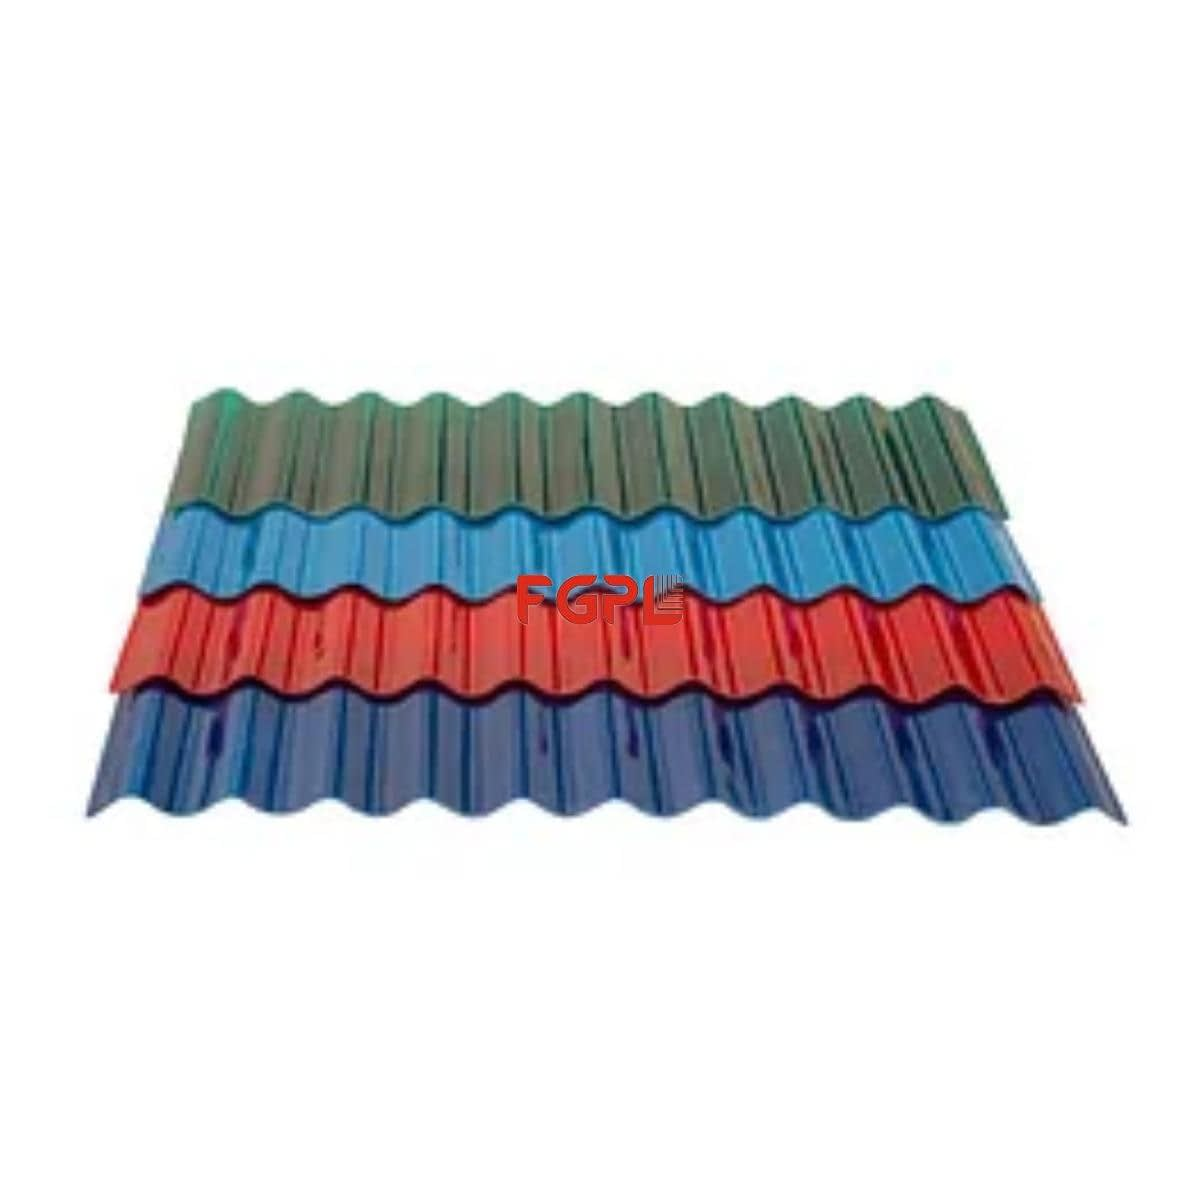 FRP Sheets, FRP Sheet manufacturer in india, fgpl india